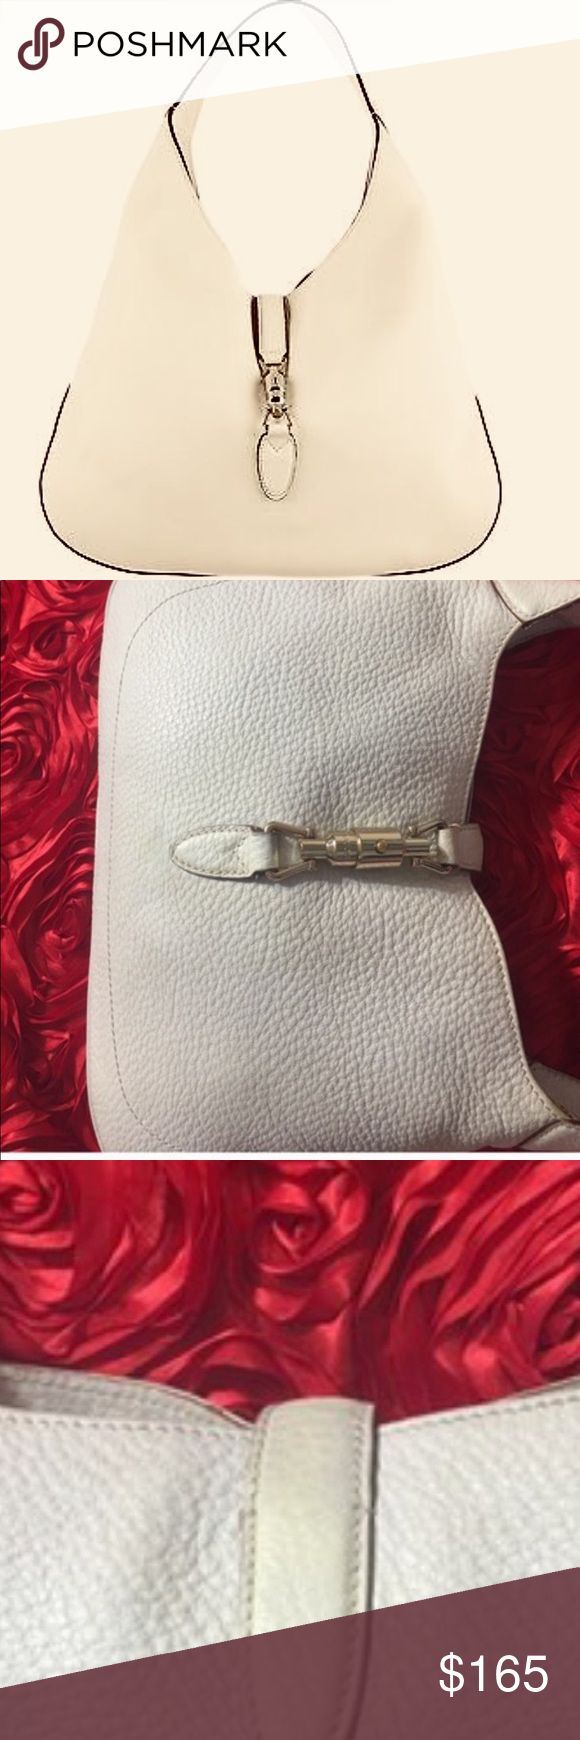 """GUCCI Jackie Leather Hobo Shoulder Bag Off-White Authentic GUCCI Vintage Jackie Leather Hobo Shoulder Handbag Off-White. Pre-Loved! Soft pebbled  leather., Palladium toned hardware, Single handle with 9.4"""" drop, Piston strap closure. Measurements: (Large): 16.9""""W x 12.2H"""" x 2.3""""D., Unlined with suede interior. From Poshmark certified seller. There are some discoloration and minor see pictures closely. No sign of tear. Leather is in great condition. Brand new one still out there and it cost a…"""